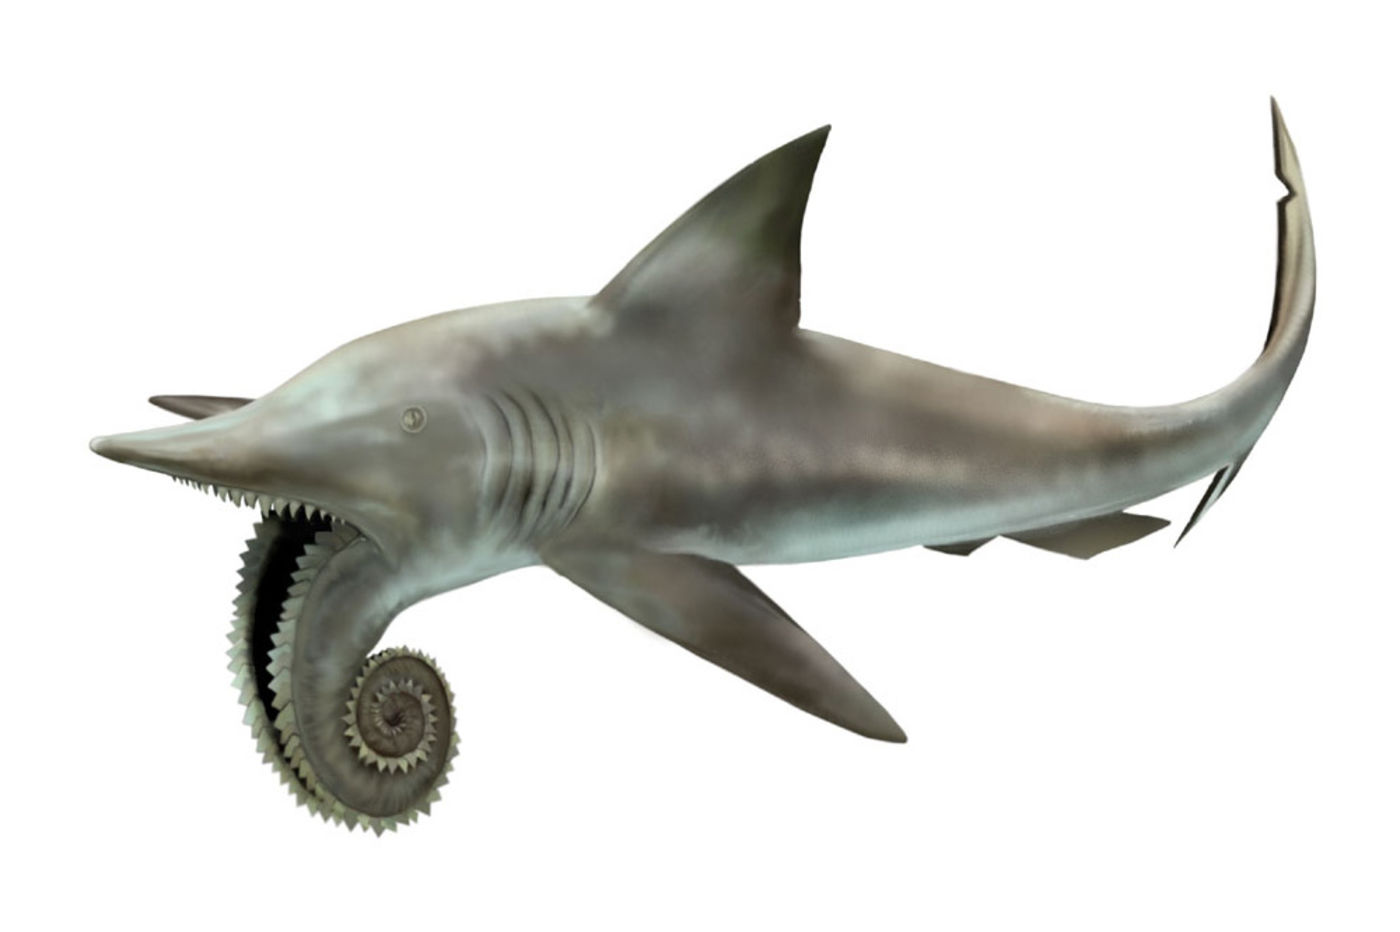 Illustration of a gray shark with a spiraled lower jaw covered in rows of teeth.